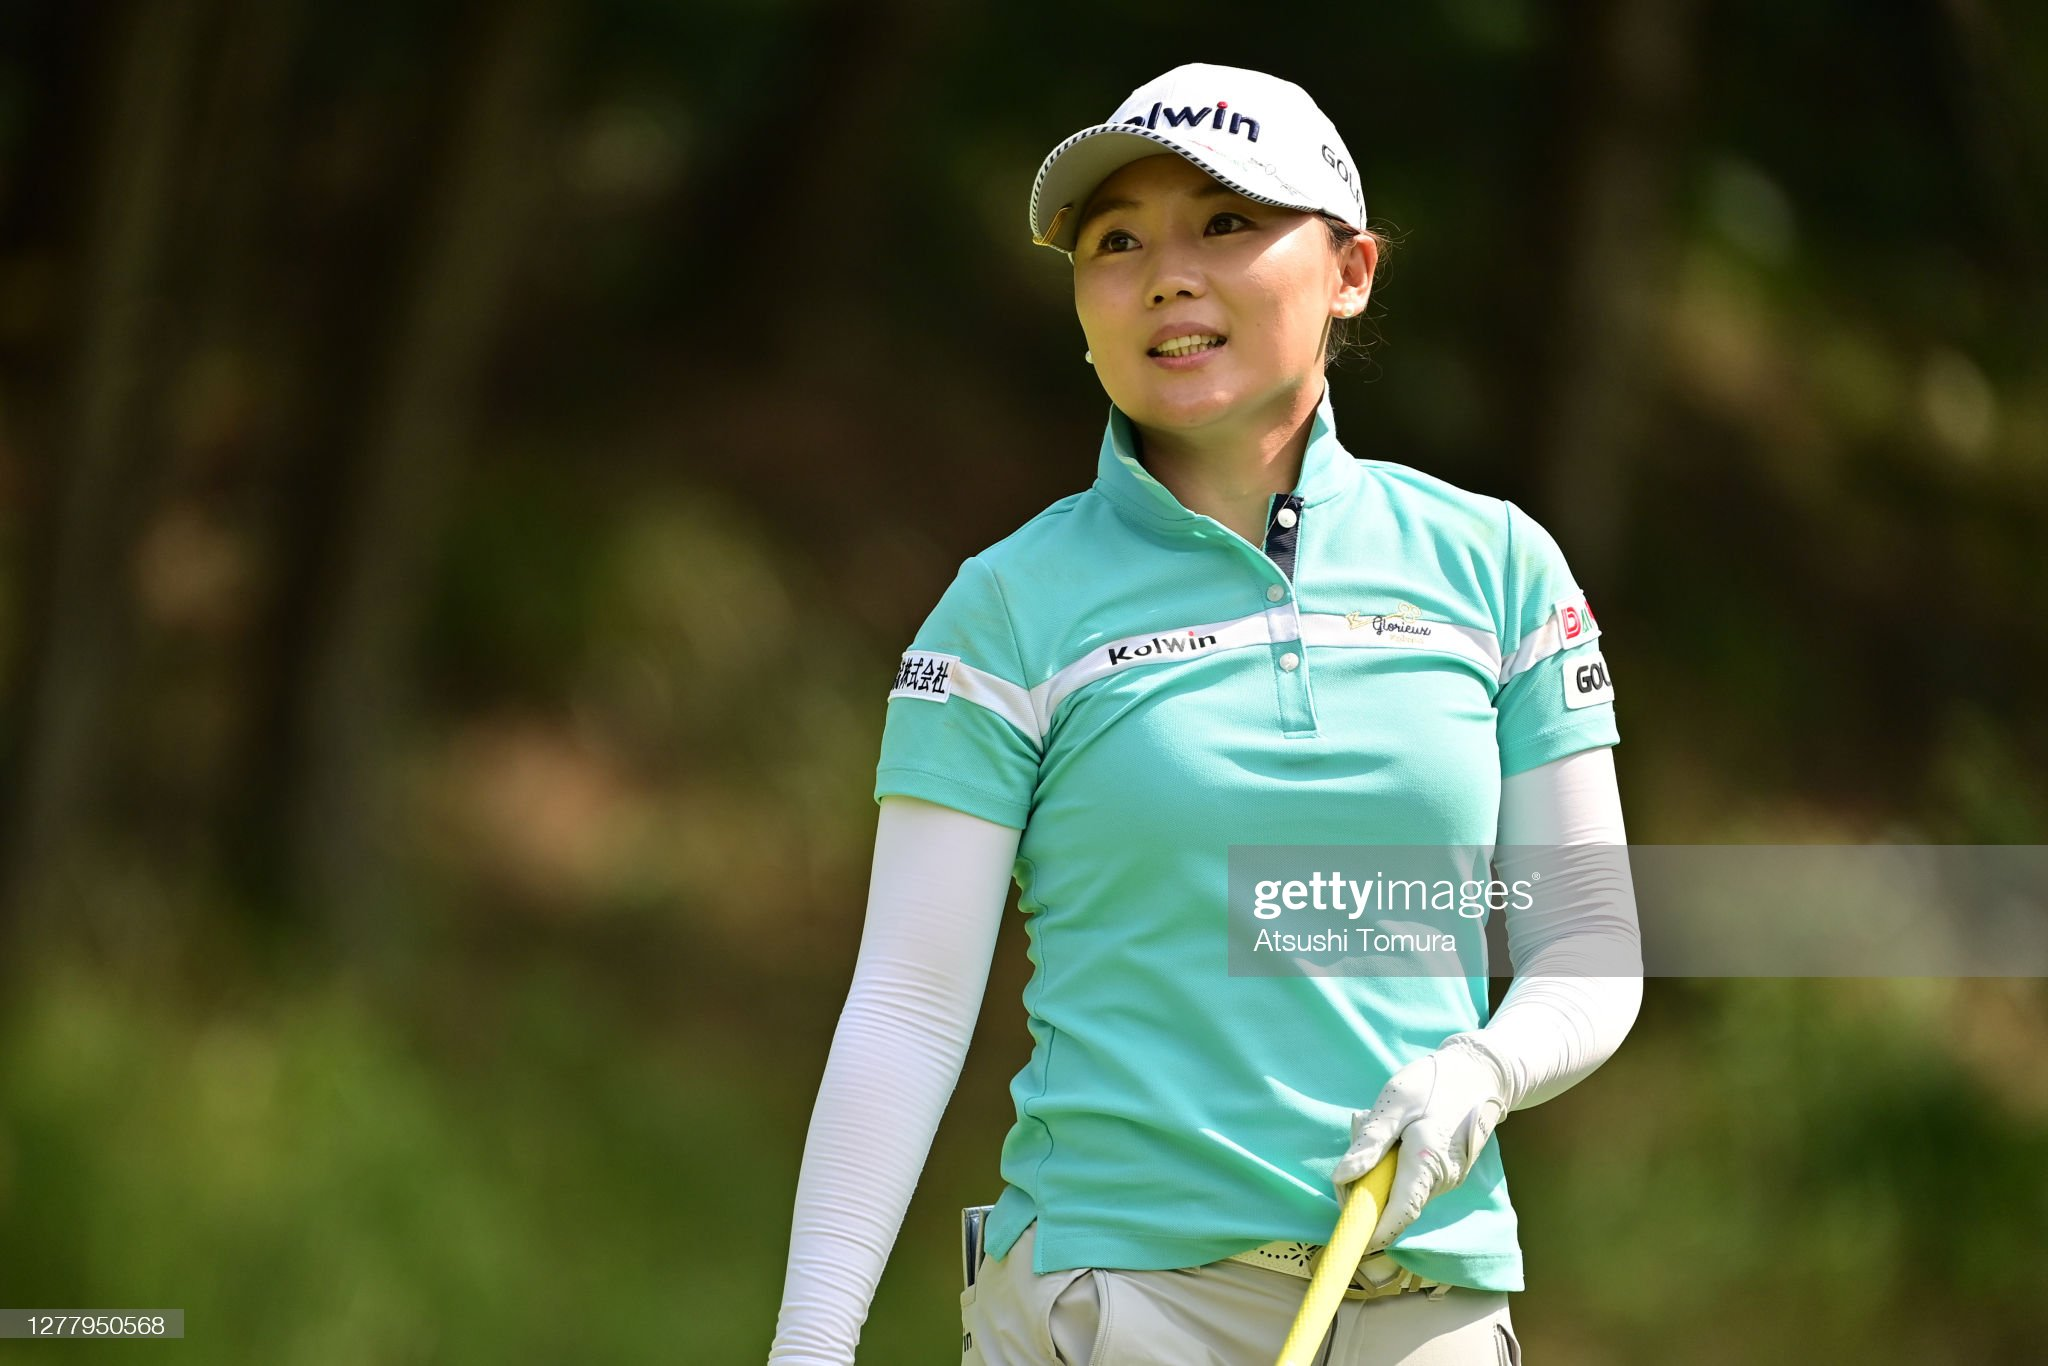 https://media.gettyimages.com/photos/nari-lee-of-south-korea-reacts-after-her-tee-shot-on-the-8th-hole-picture-id1277950568?s=2048x2048